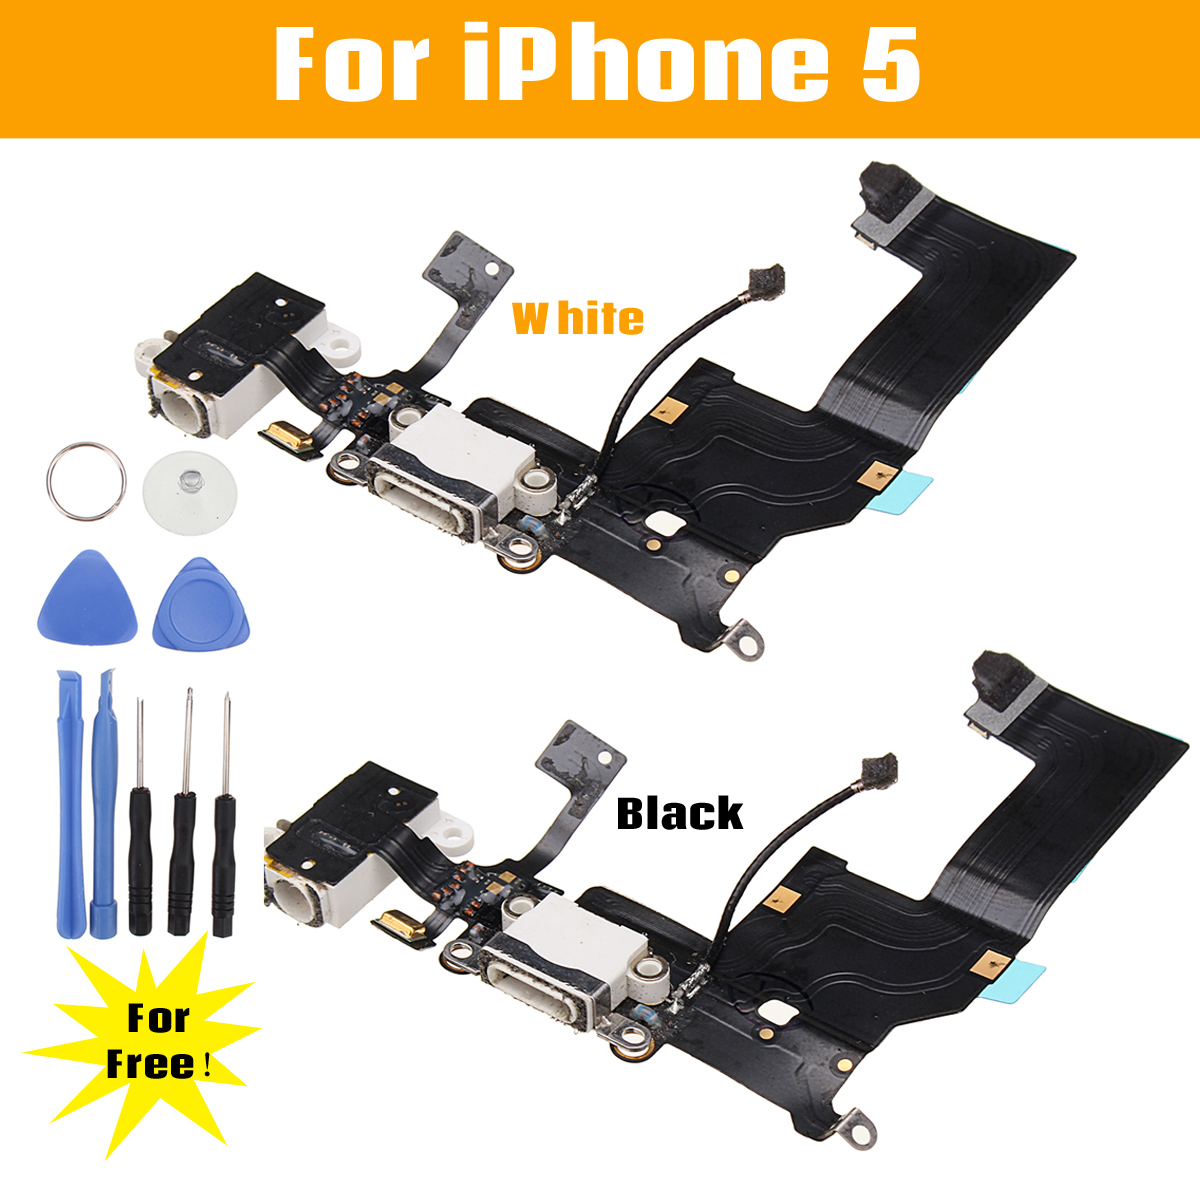 Charging Port Dock Connector Flex Cable Replacement + Repair Tools for iPhone 5